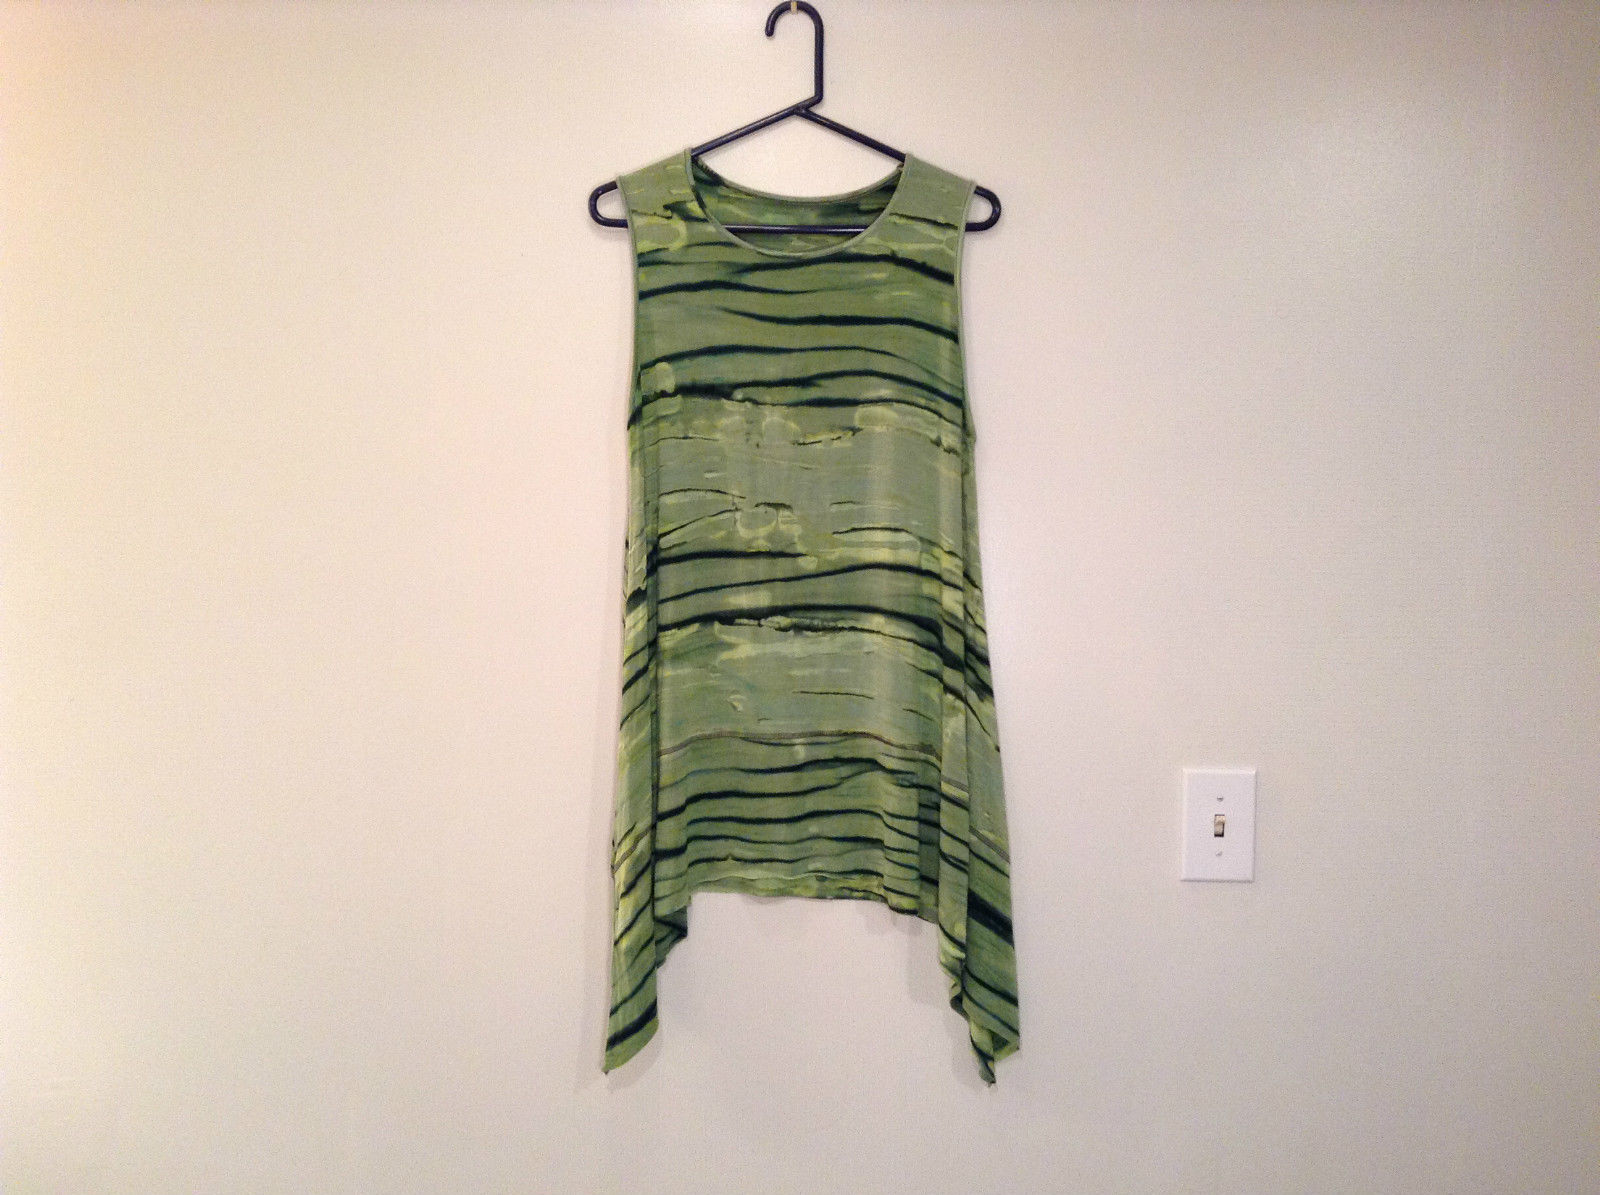 Green Gothic Like Print Pattern Uneven Bottom Sides Longer Sleeveless Top